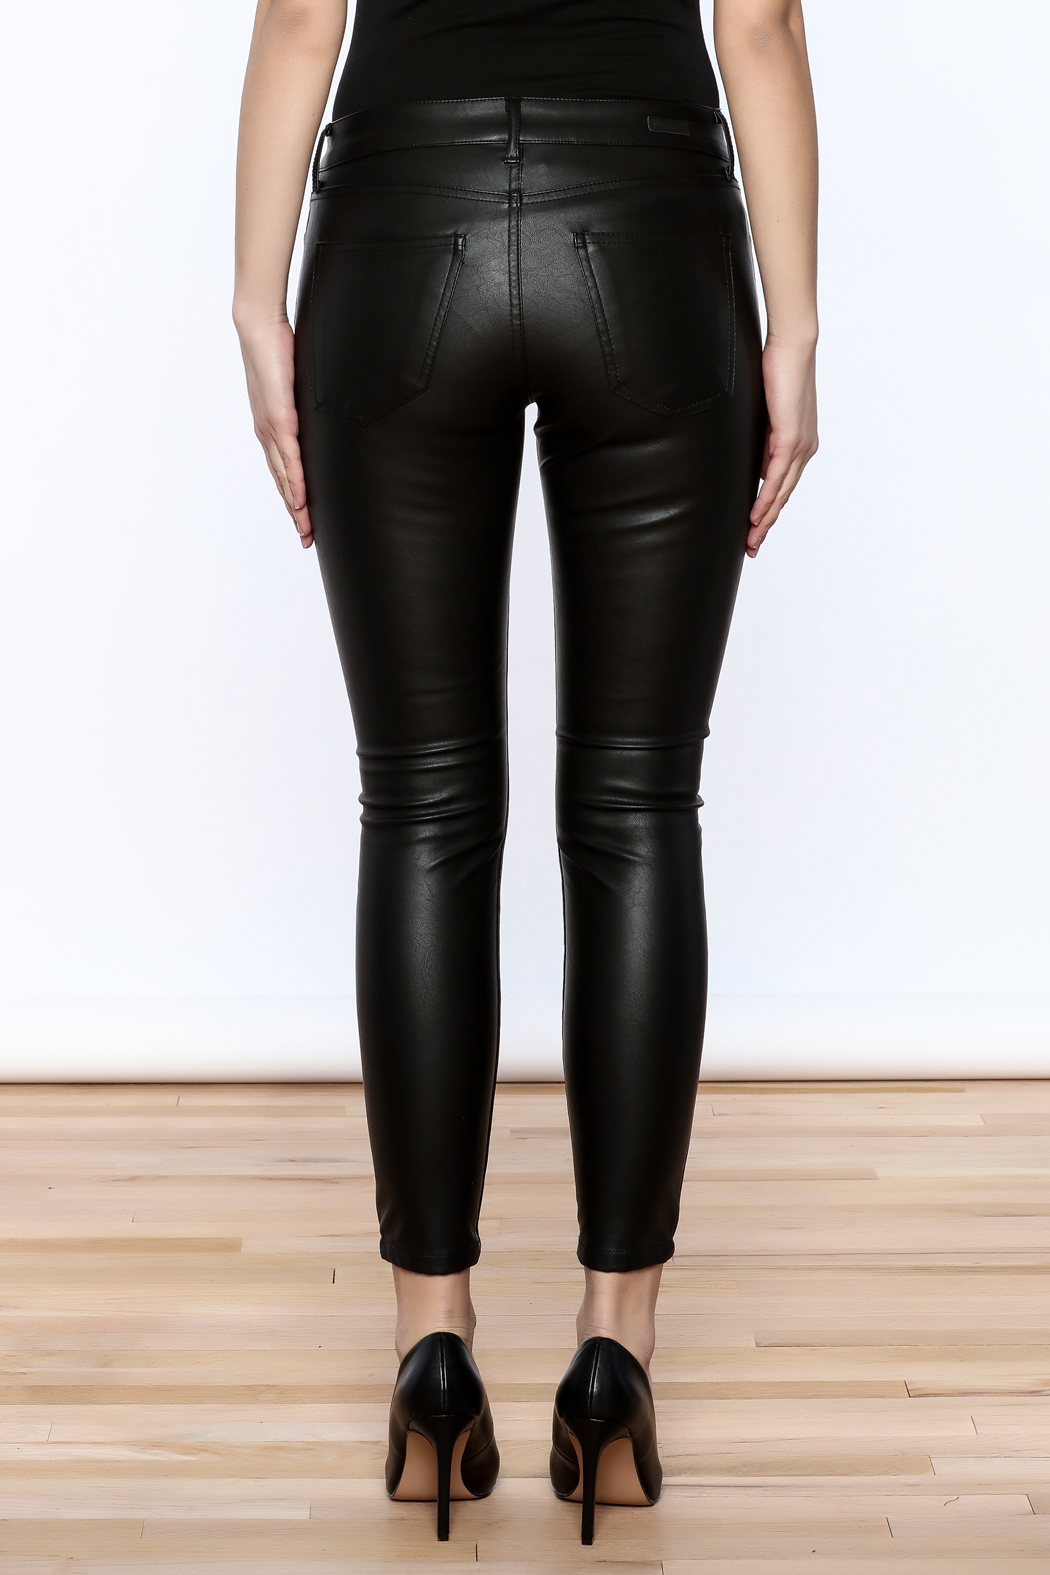 Kut from the Kloth Faux Leather Pant - Back Cropped Image